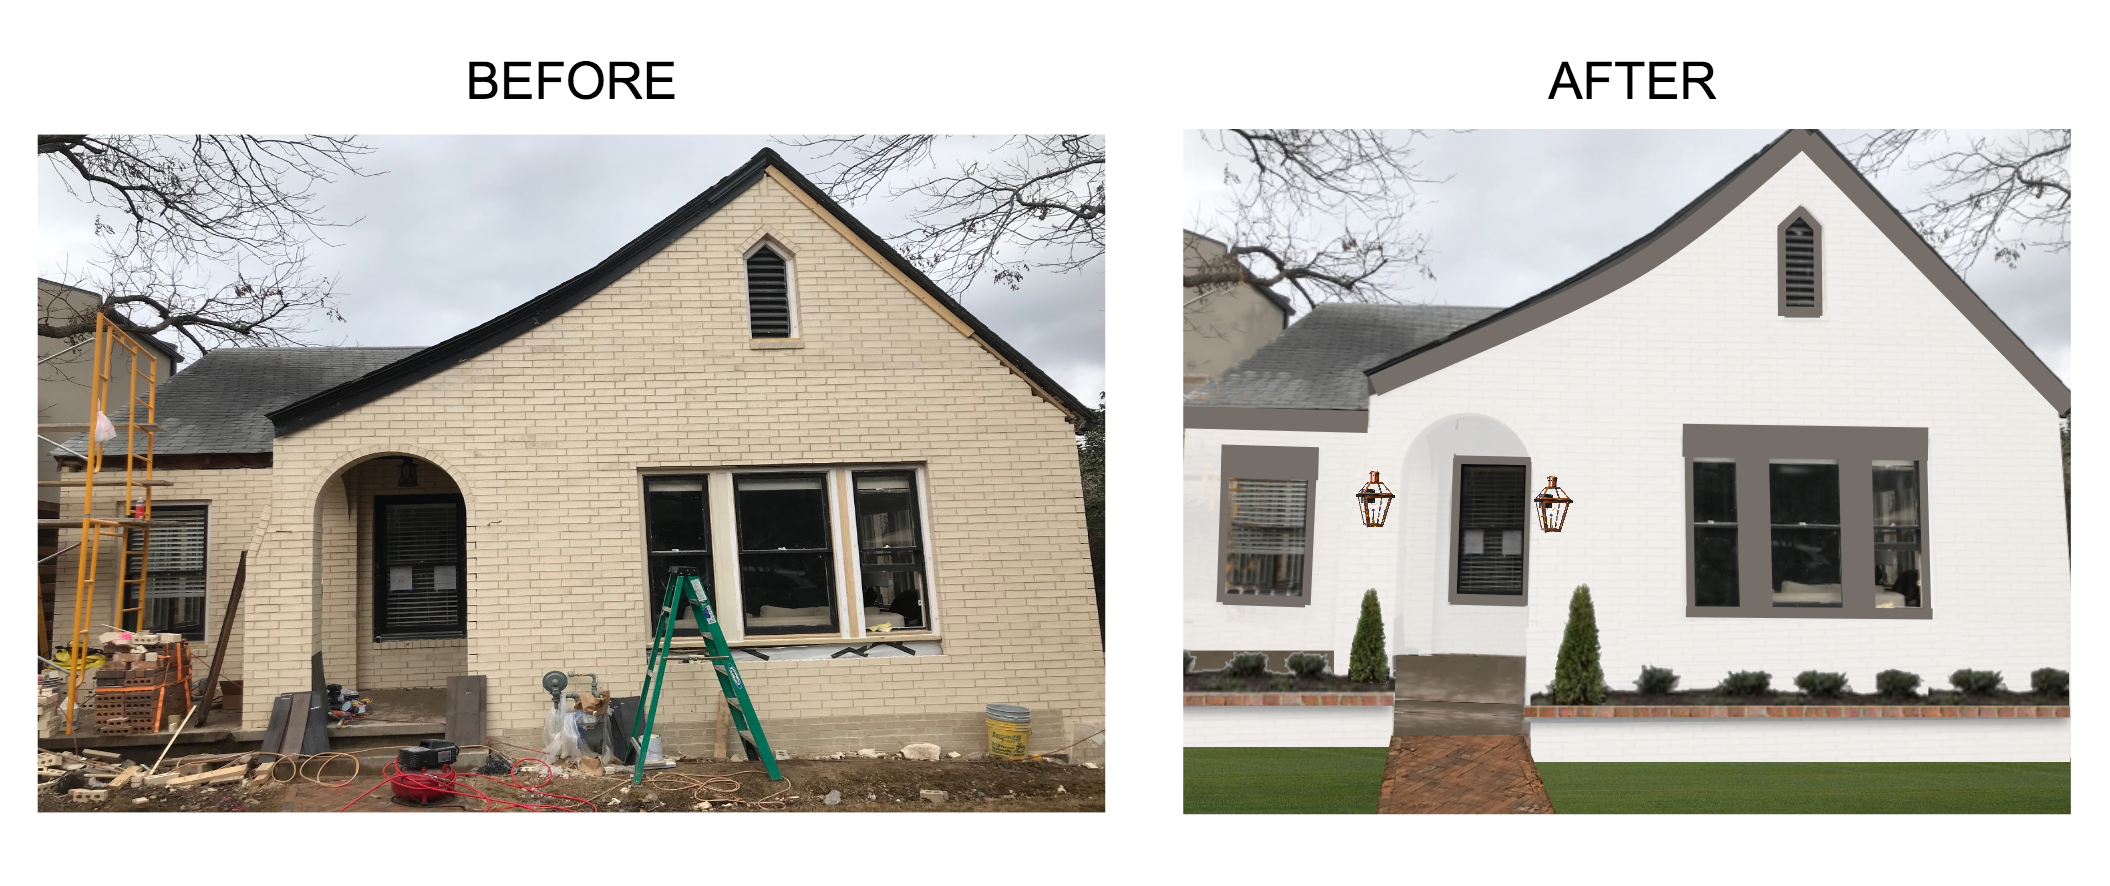 painted brick exterior before and after 3a design studio.png